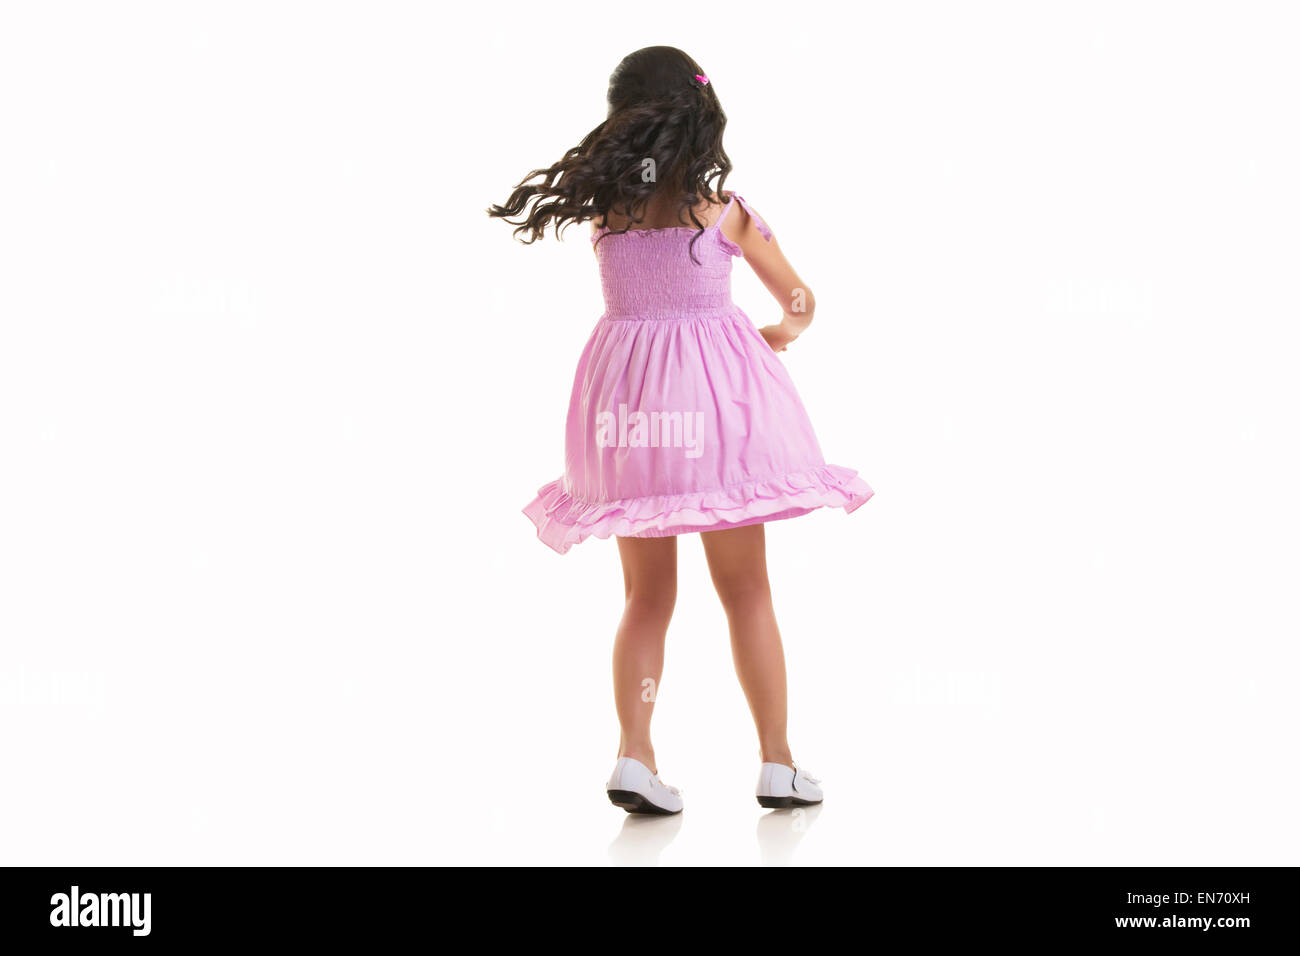 Girl twirling around - Stock Image